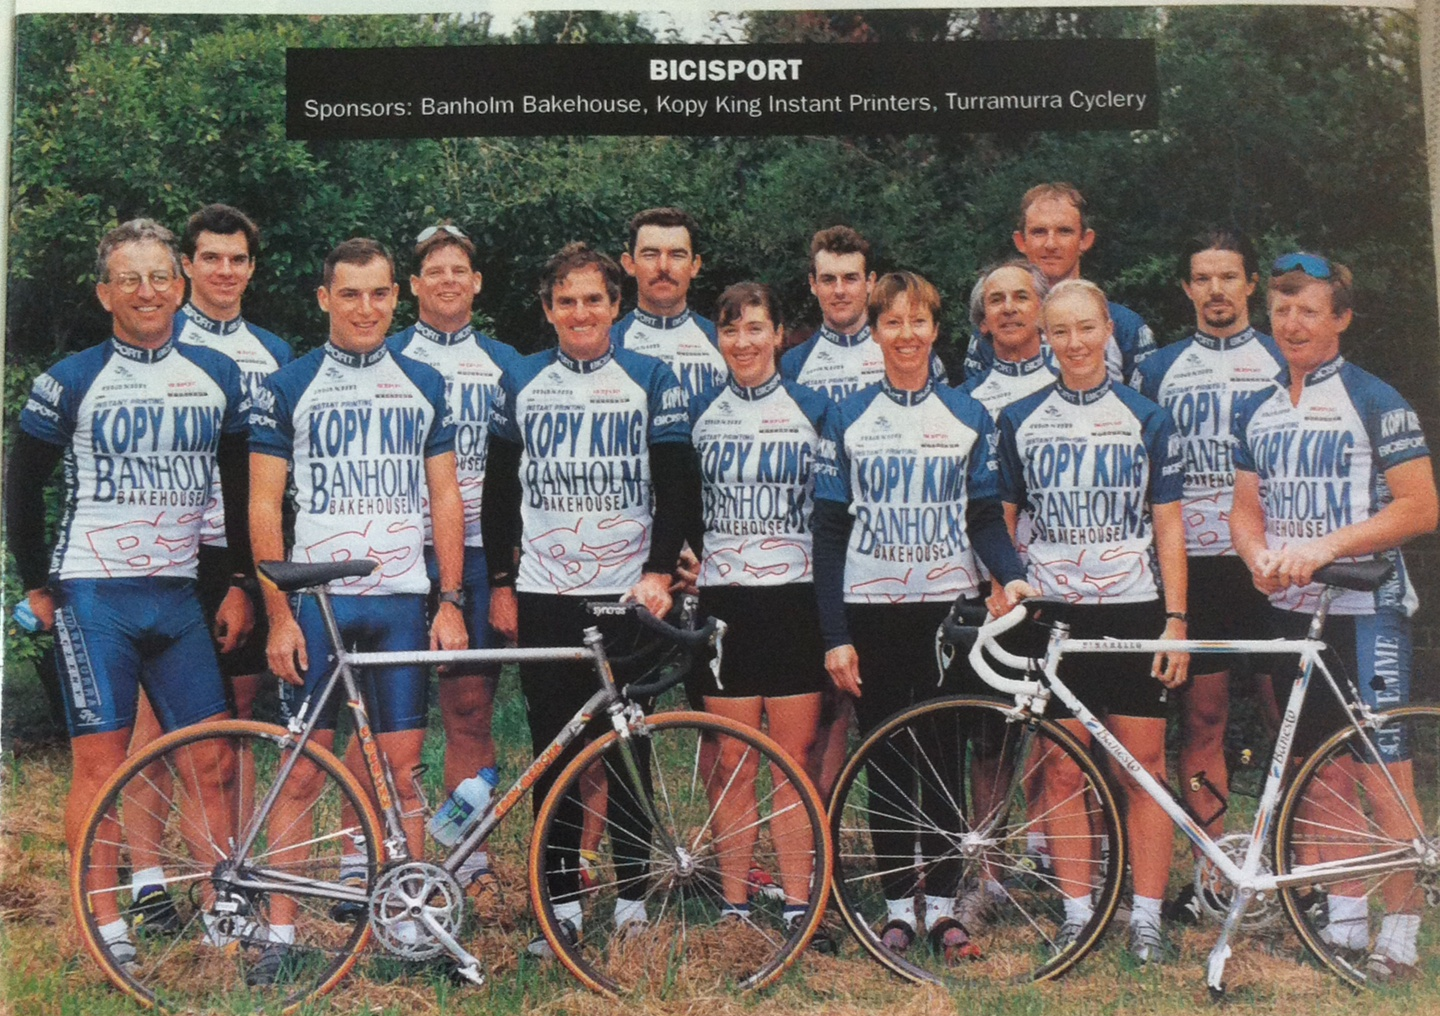 """BiciSport was established in 1995 with the club name & logo taken from the Italian """"BiciSport"""" magazine. The original primary sponsors were Banholm Bakehouse (at St Ives),Kopy King & Turramurra Cyclery. The 1995 team photo was taken at St Ives."""